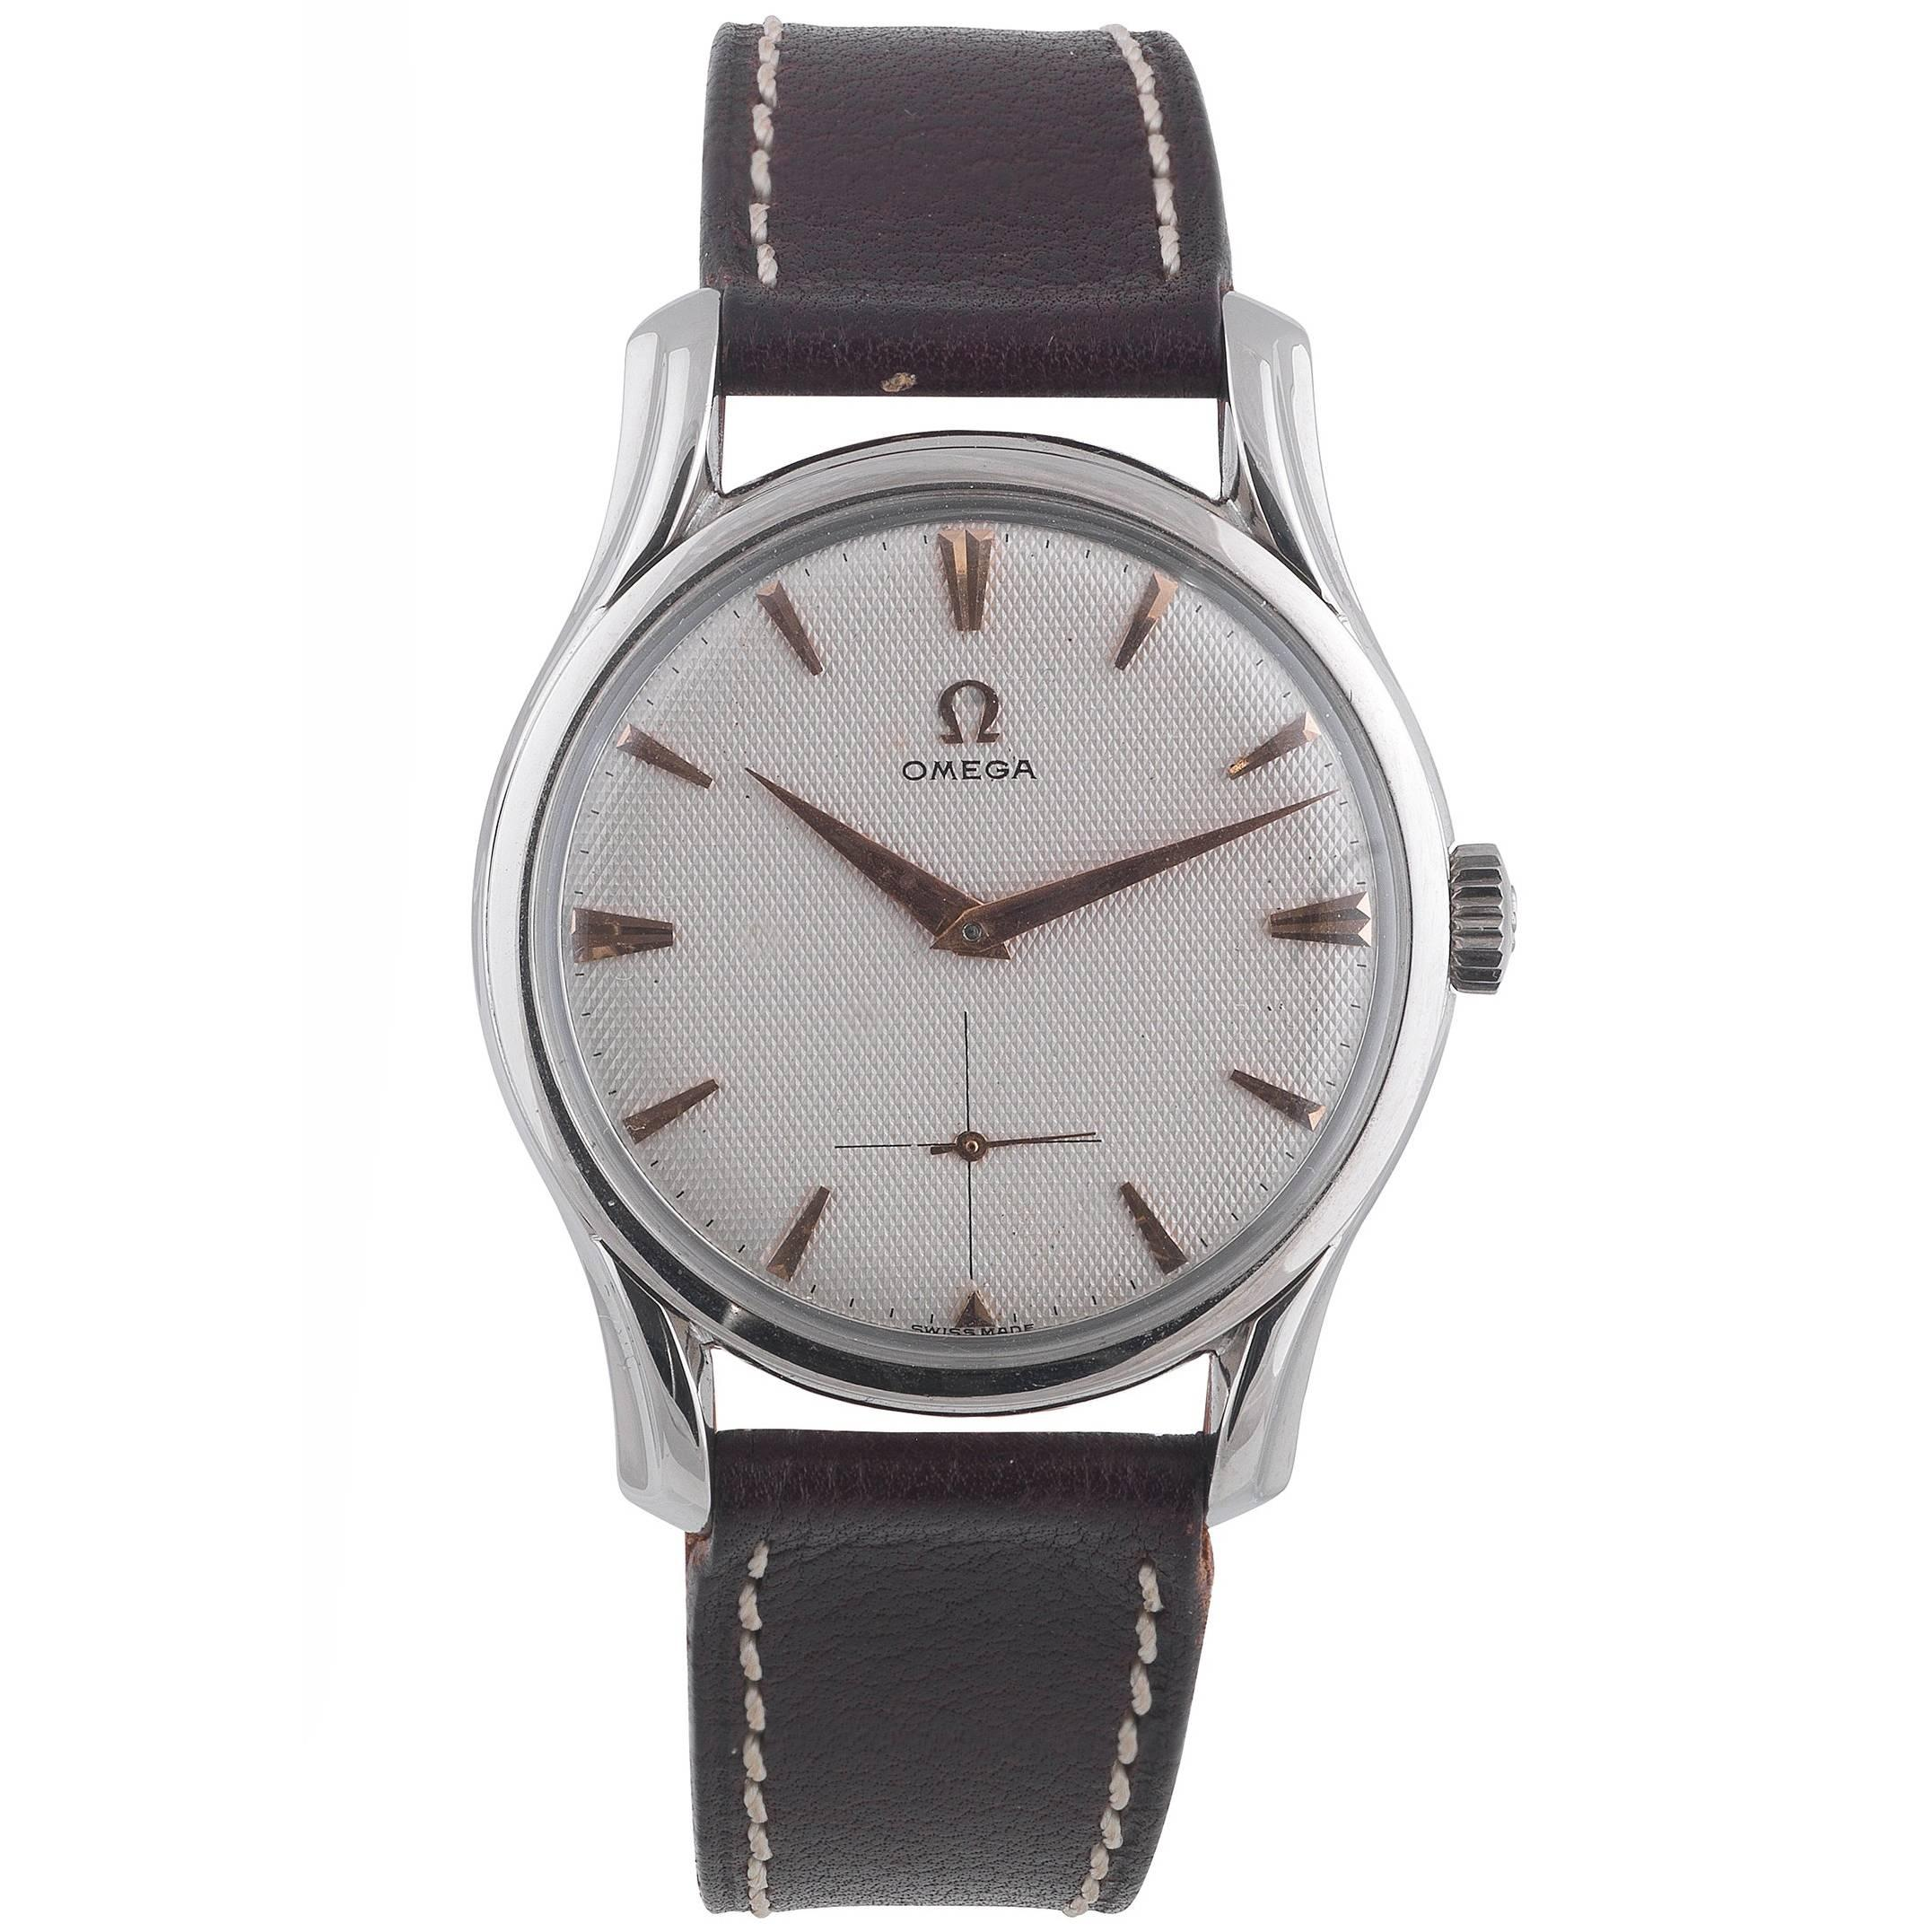 1950s watches 284 for sale at 1stdibs rh 1stdibs com Omega Alarms Homepage Omega Alarms Homepage